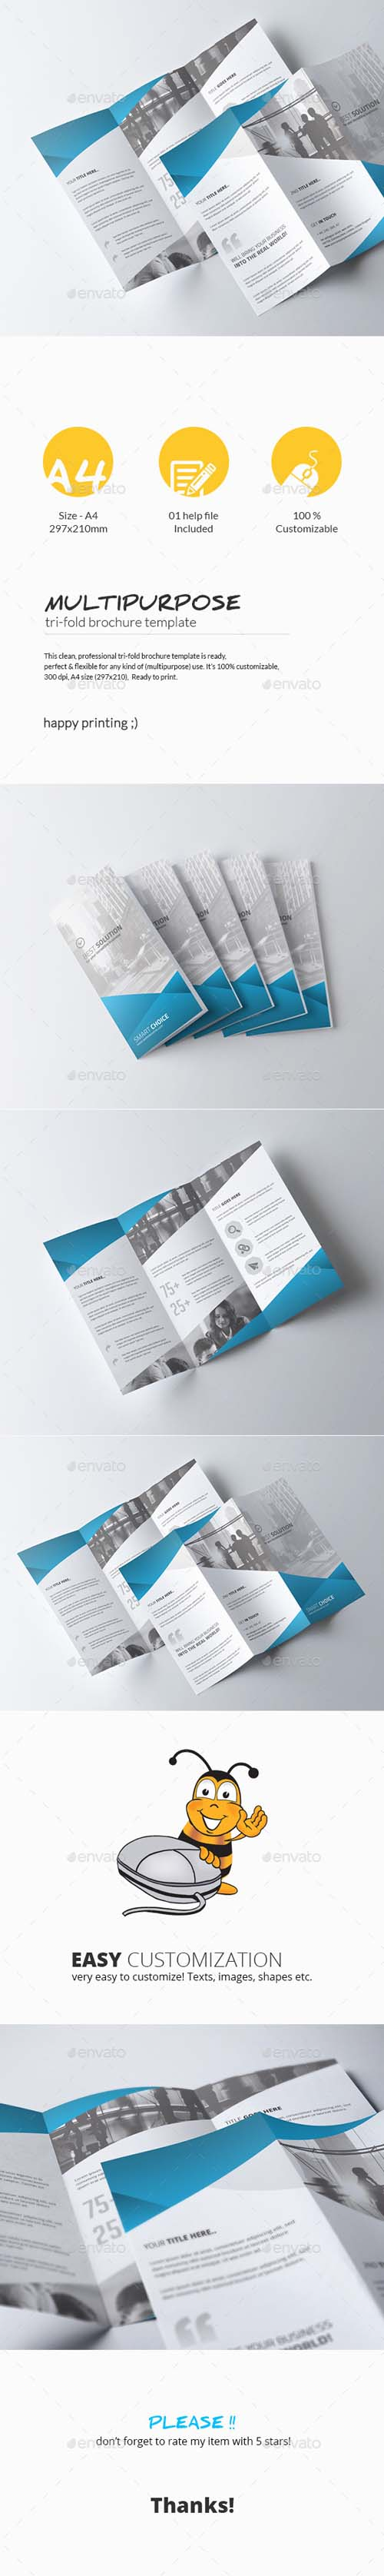 Tri-Fold Brochure - Multipurpose 11242629